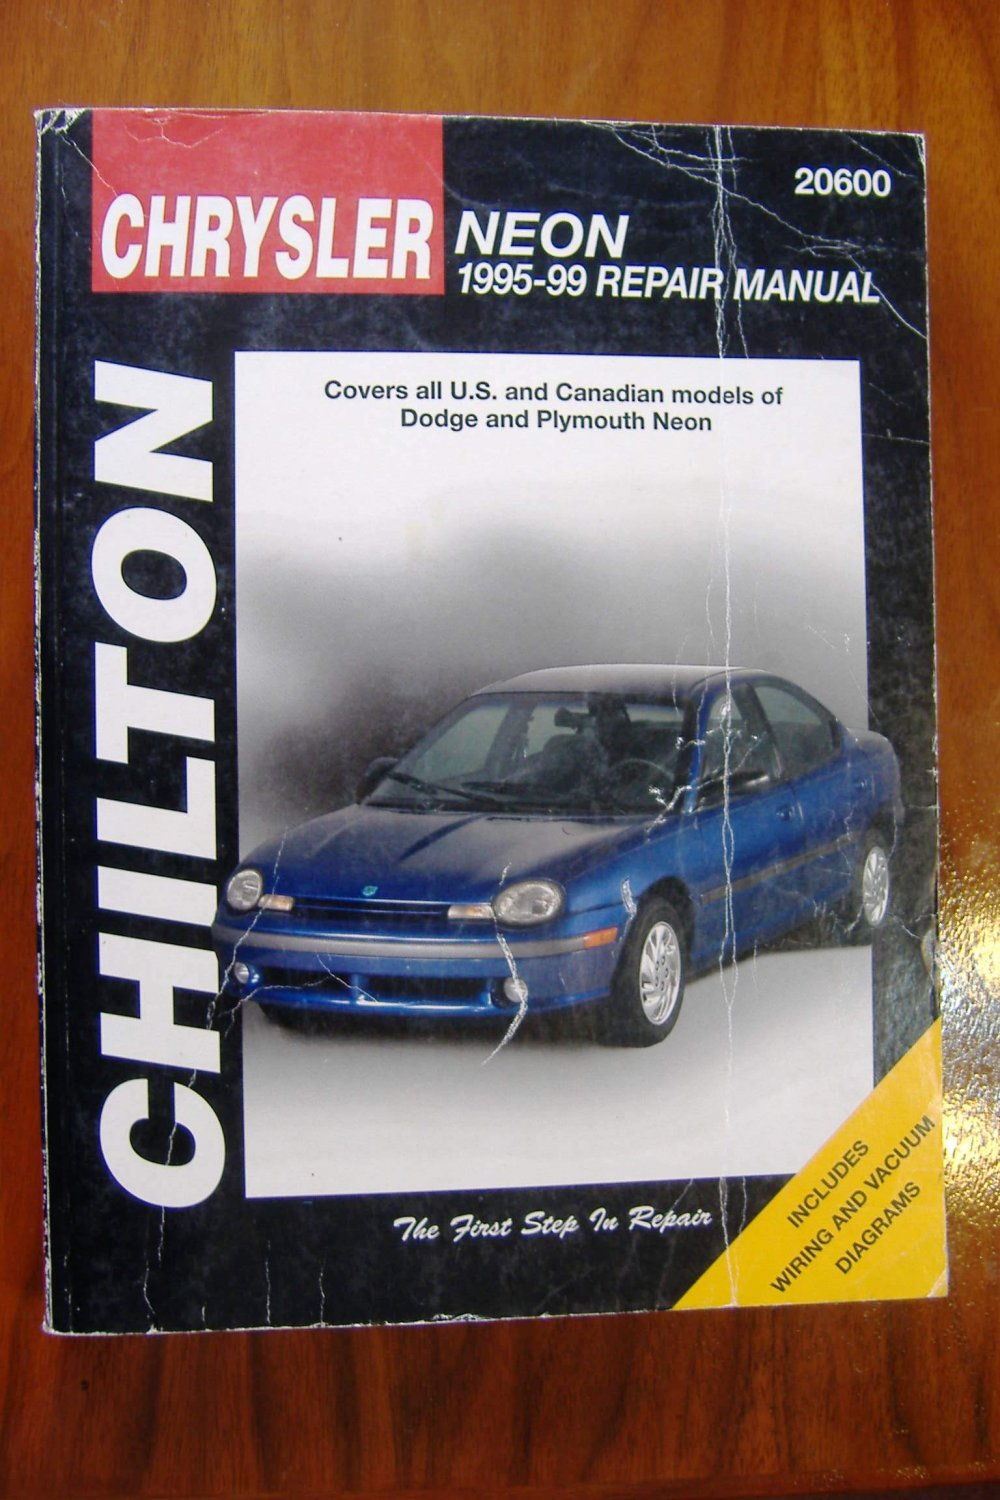 95-99 Dodge & Plymouth Neon Chilton's Repair Manual